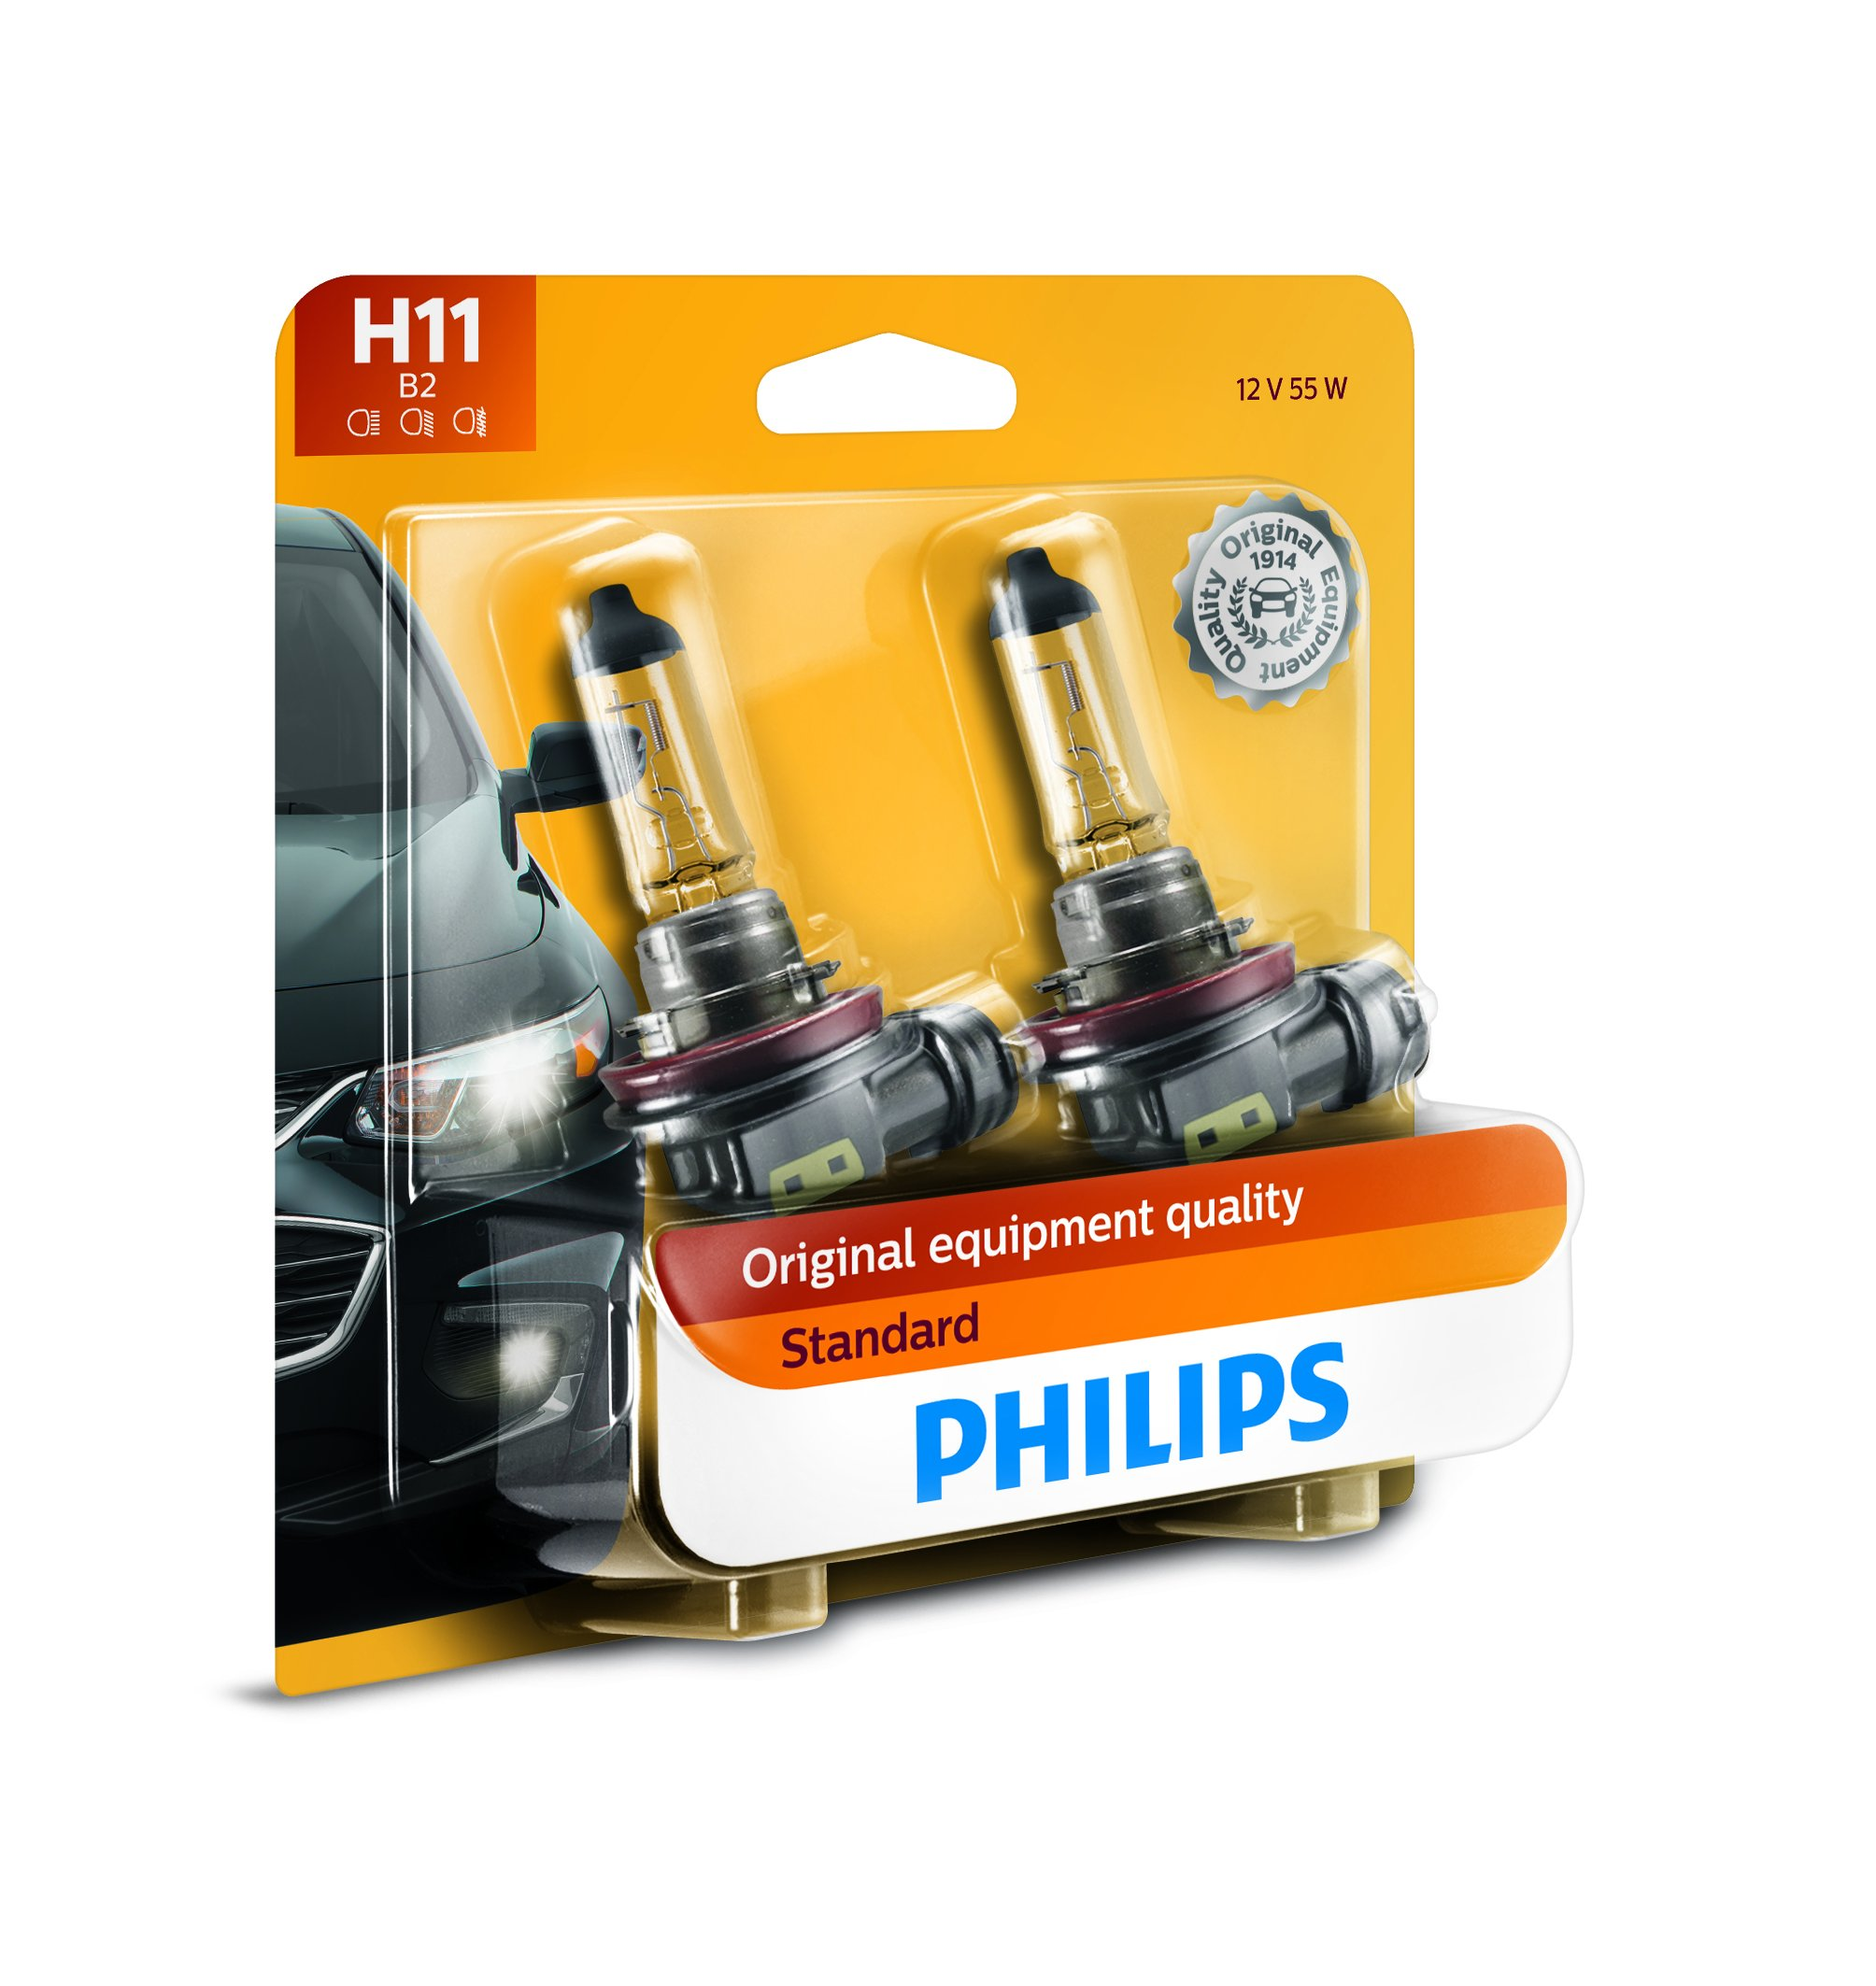 Philips H11 Standard Halogen Replacement Headlight Bulb, 2 Pack by PHILIPS